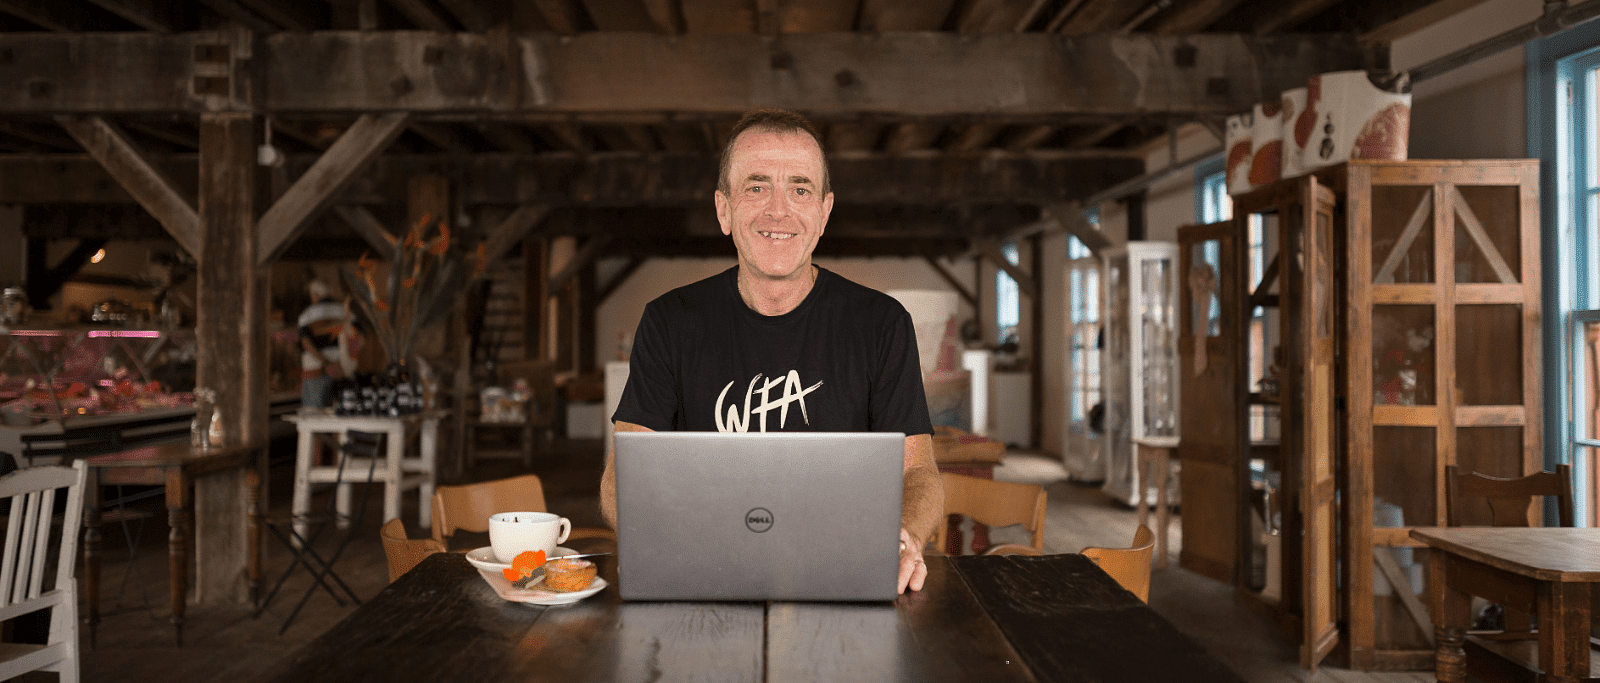 Andy Morris from Working From Anywhere.